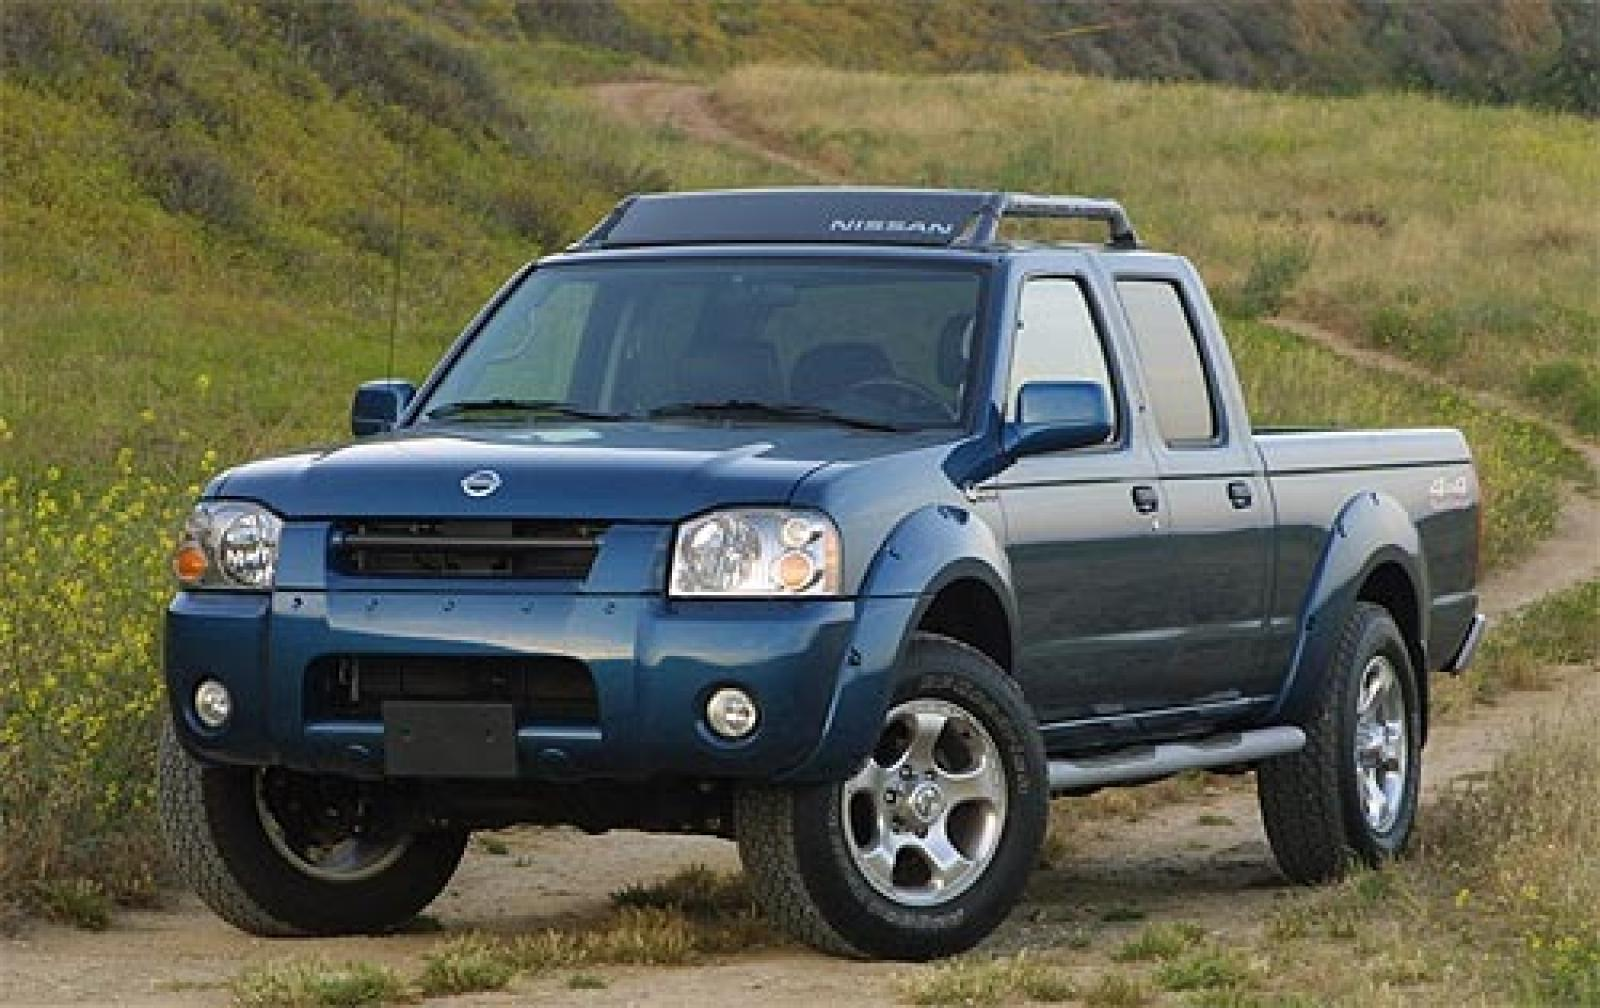 2002 nissan frontier information and photos zombiedrive. Black Bedroom Furniture Sets. Home Design Ideas